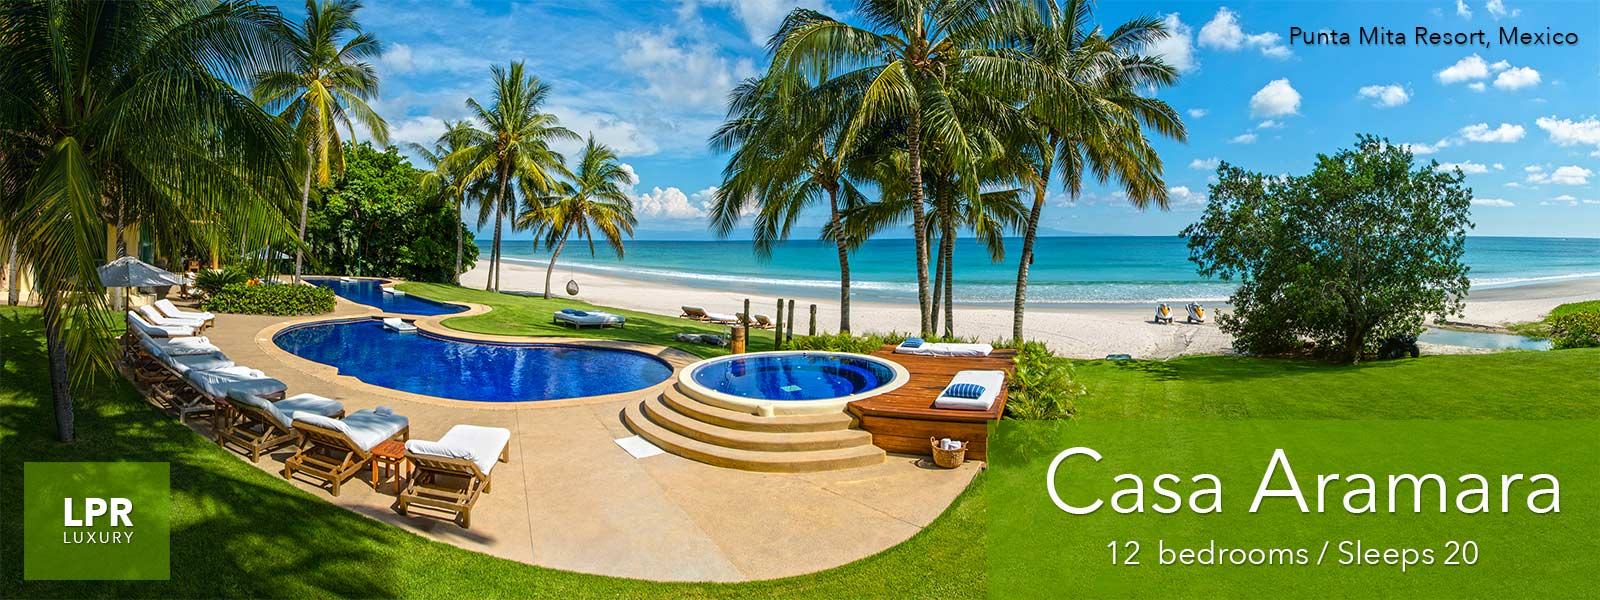 Casa Aramara at the Punta Mita Resort - Luxury Punta Mita Real Estate and Vacation Rentals Villa